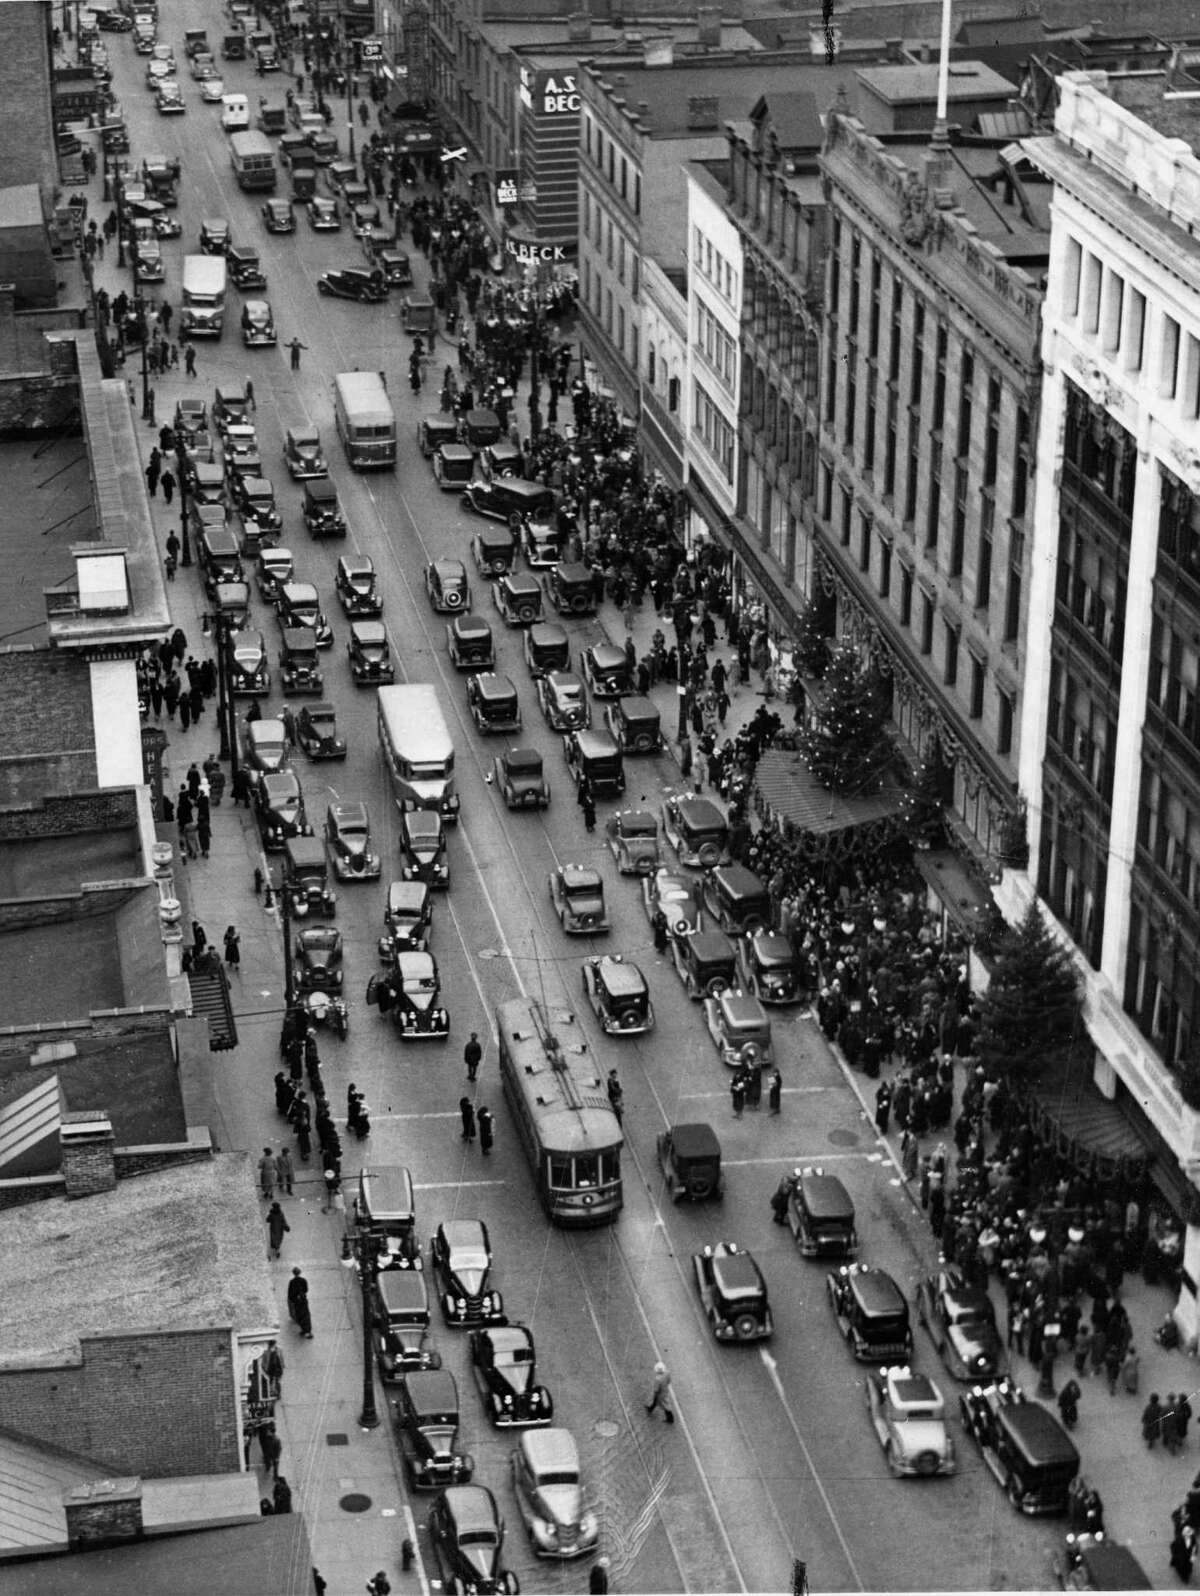 Continue browsing this slideshow to see more historical holiday shopping photos from our archive. Shoppers flock to John G. Myers Department Store on North Pearl Street in Albany during the holiday season in the 1940s.